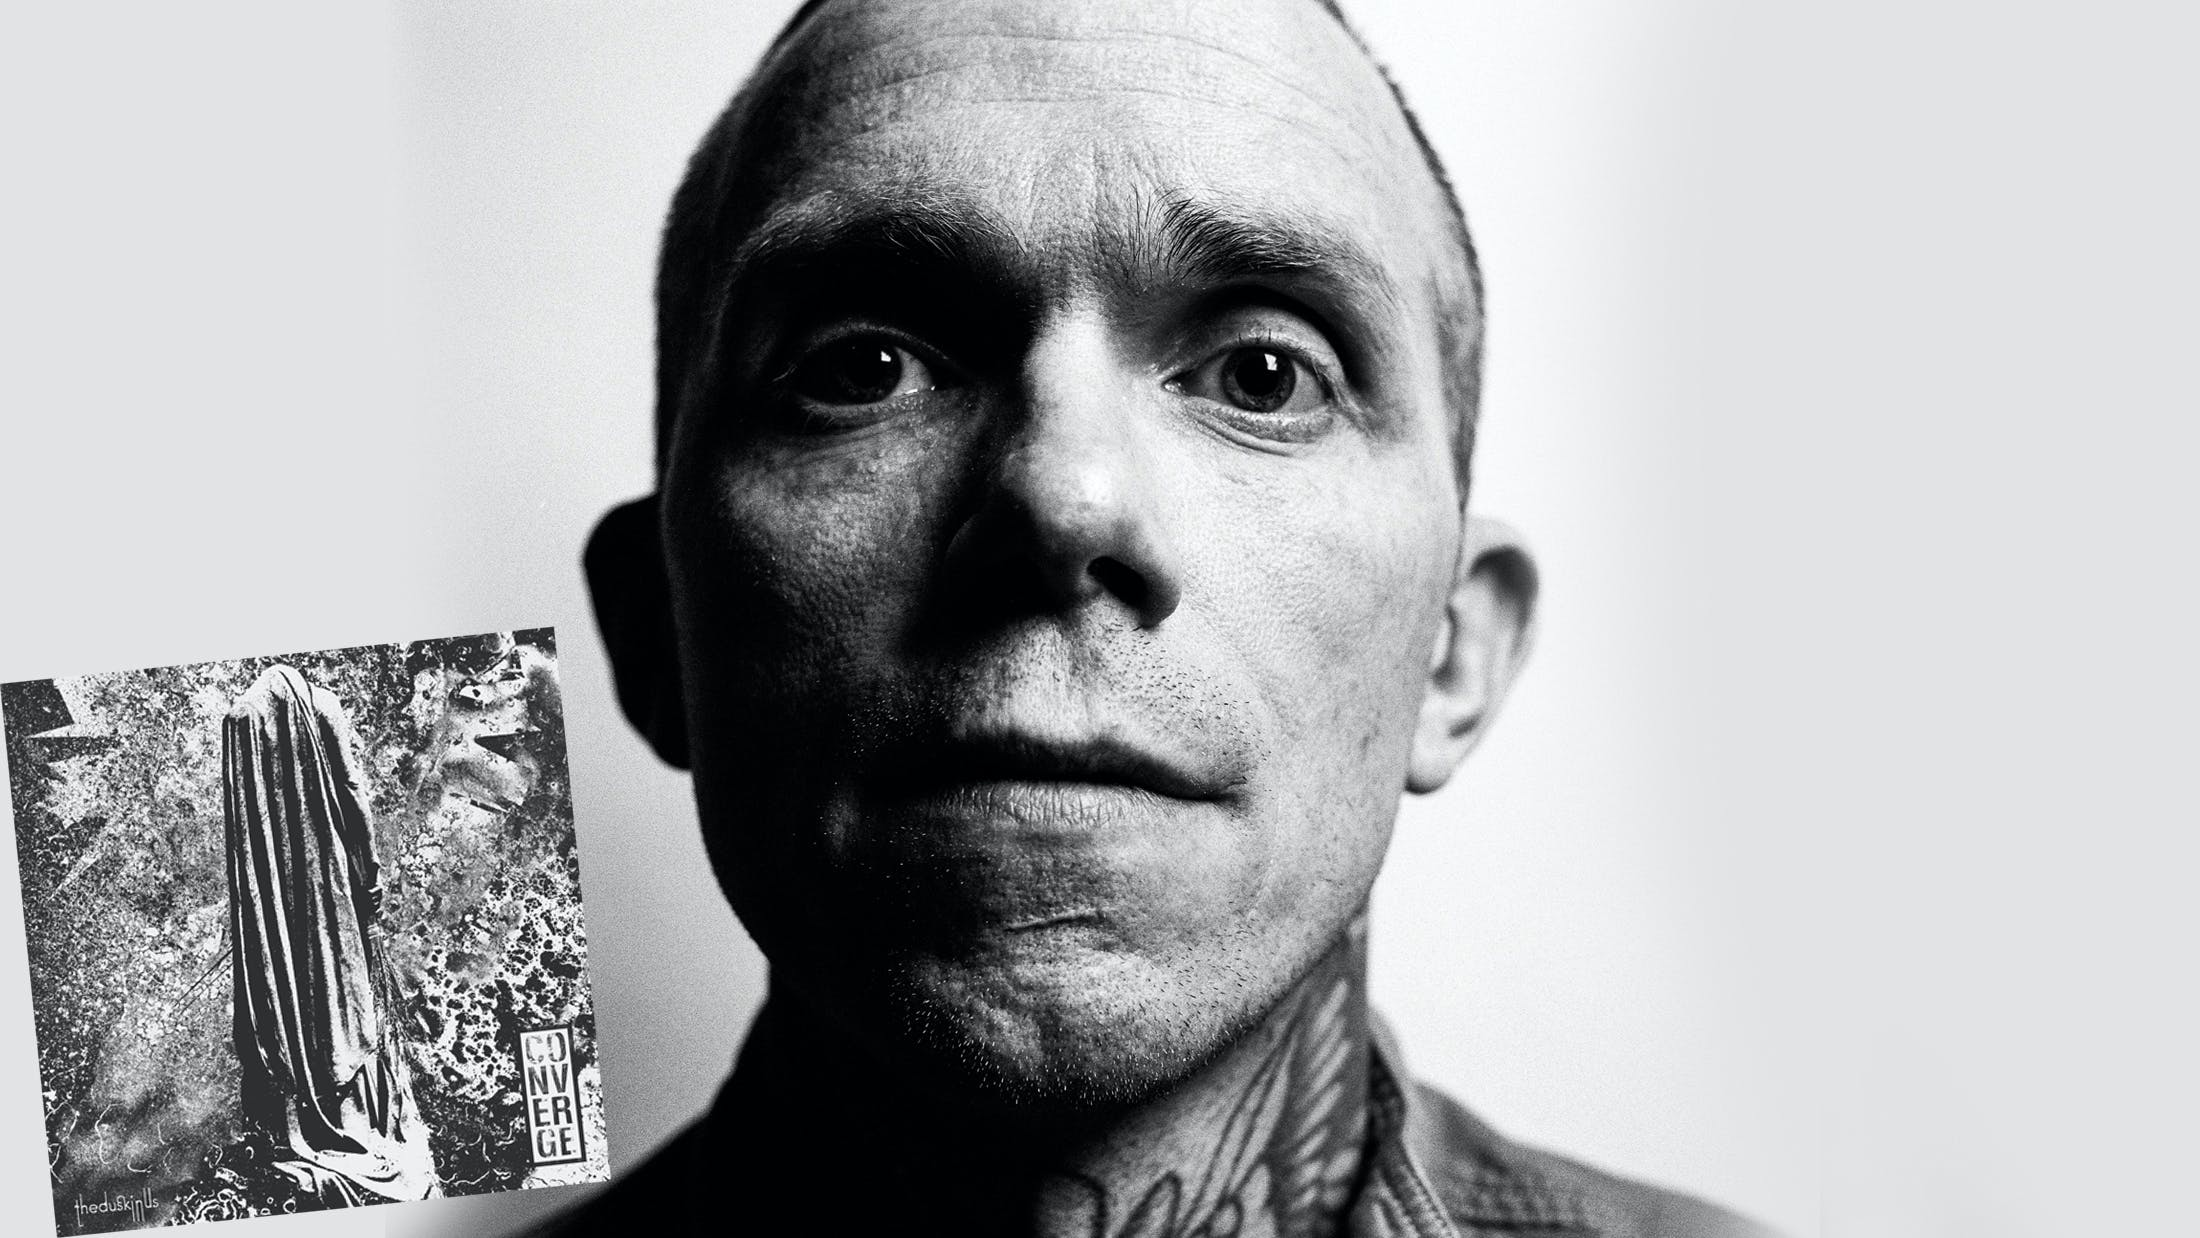 Converge's Jacob Bannon Talks To Us About The New Album, His Creative Process And The Future Of The Band